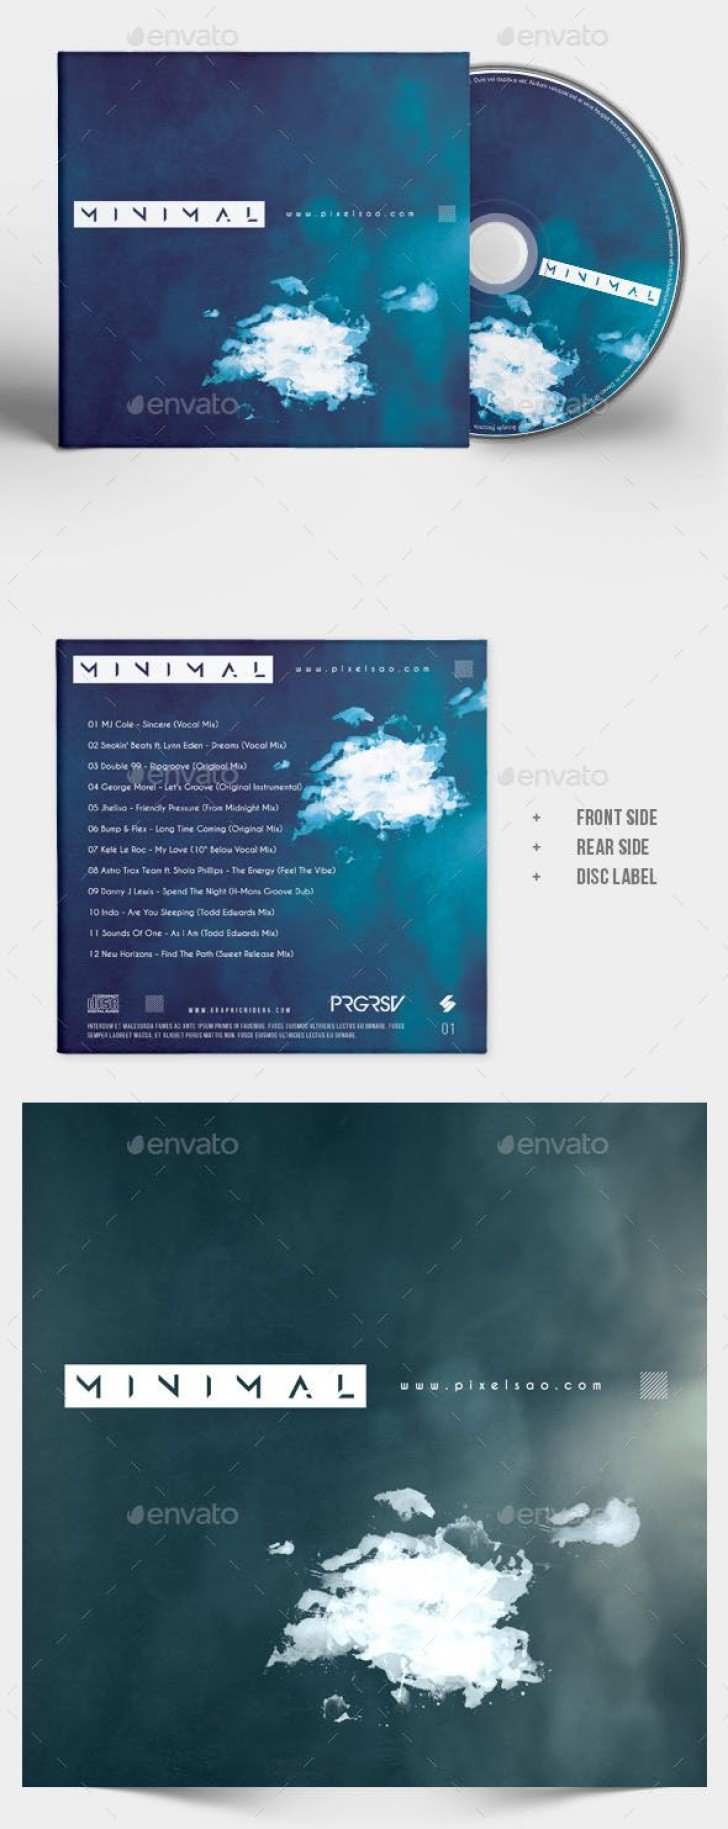 000 Top Cd Cover Design Template Photoshop Concept  Label Psd Free728